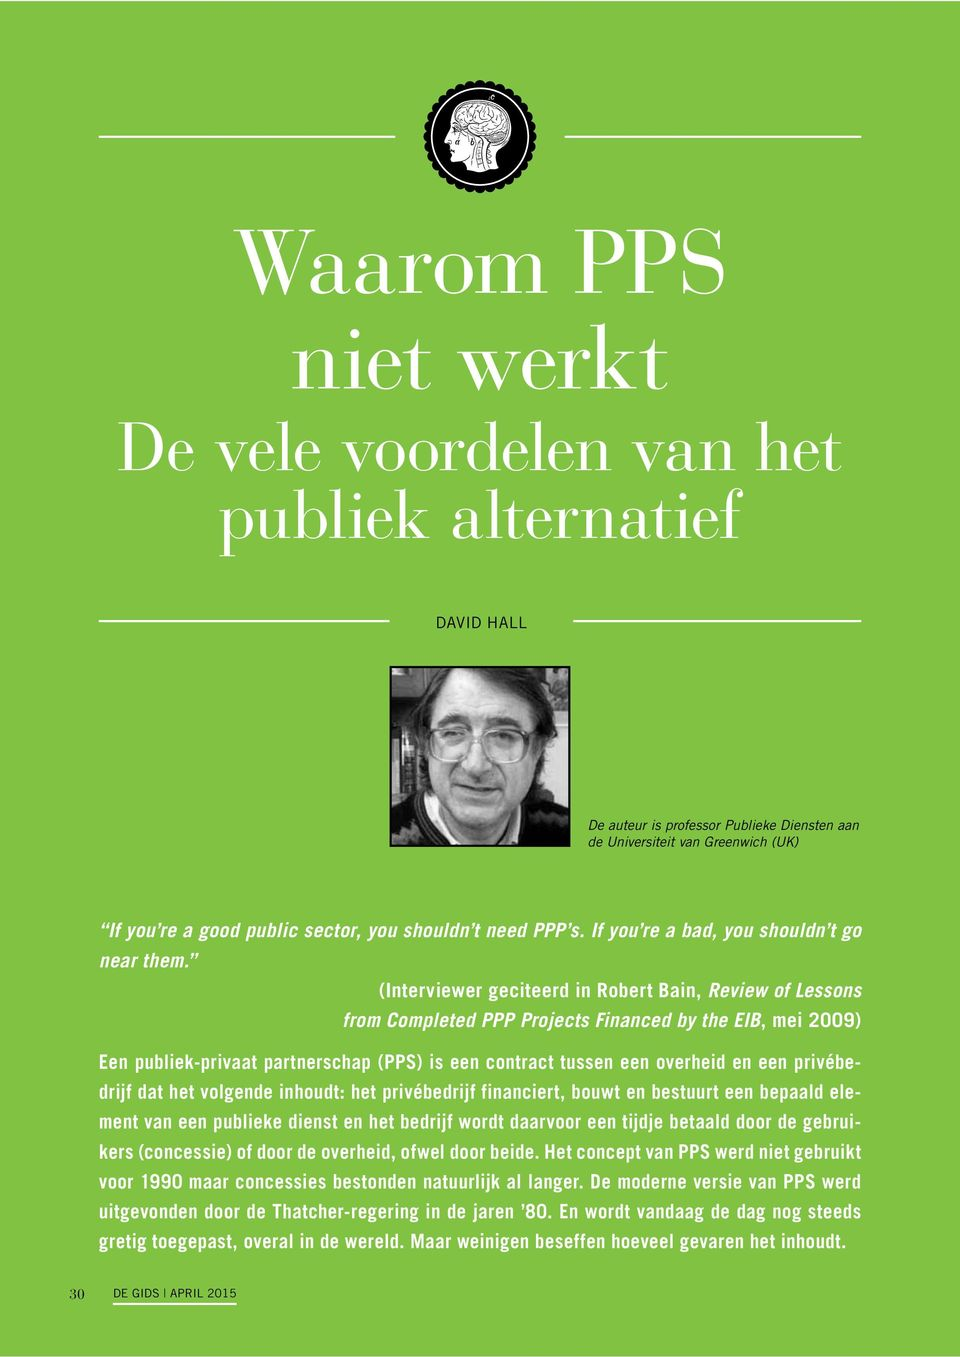 (Interviewer geciteerd in Robert Bain, Review of Lessons from Completed PPP Projects Financed by the EIB, mei 2009) Een publiek-privaat partnerschap (PPS) is een contract tussen een overheid en een